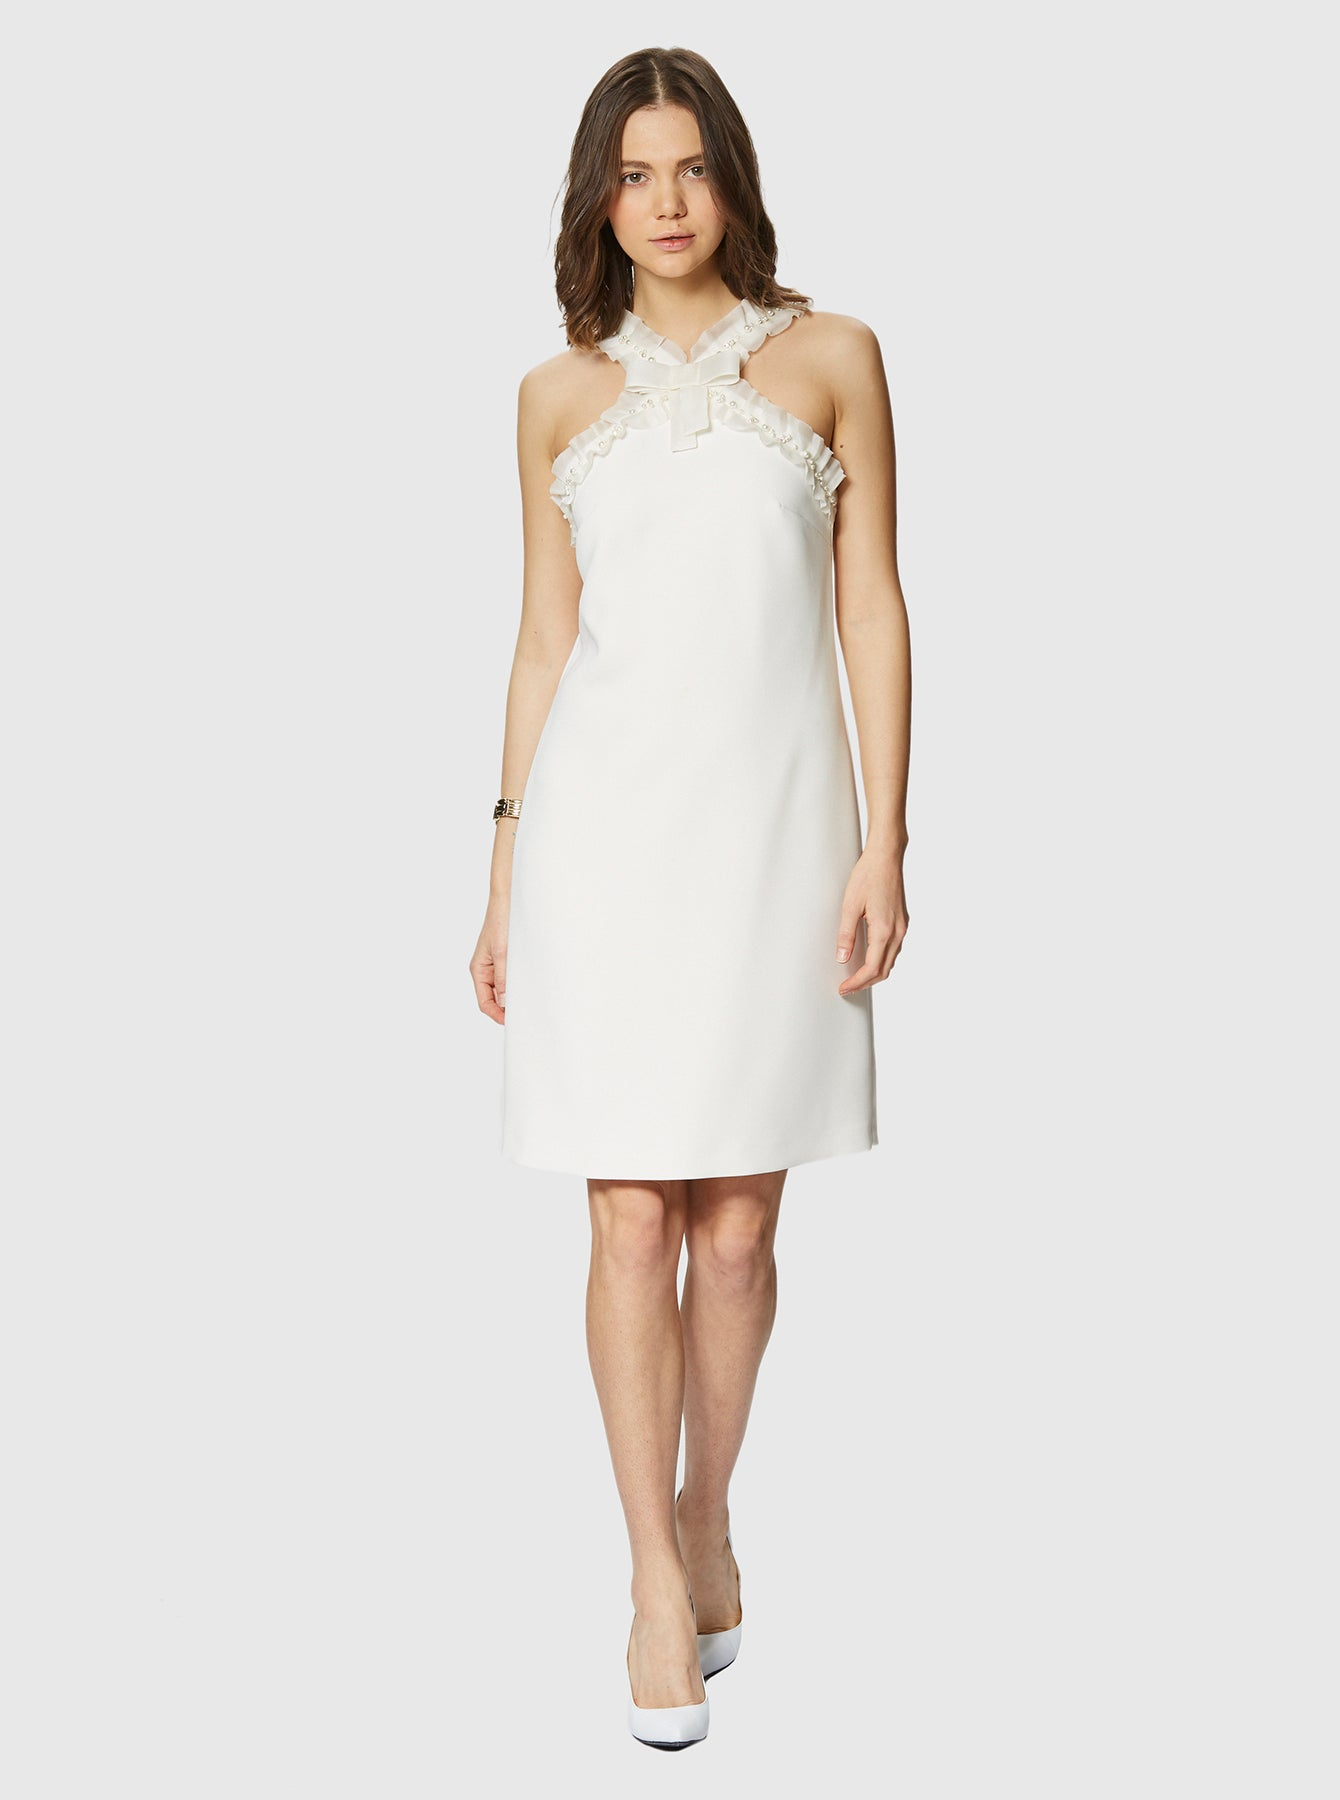 ROMAN USA-Pearl Detailed Halter Dress-